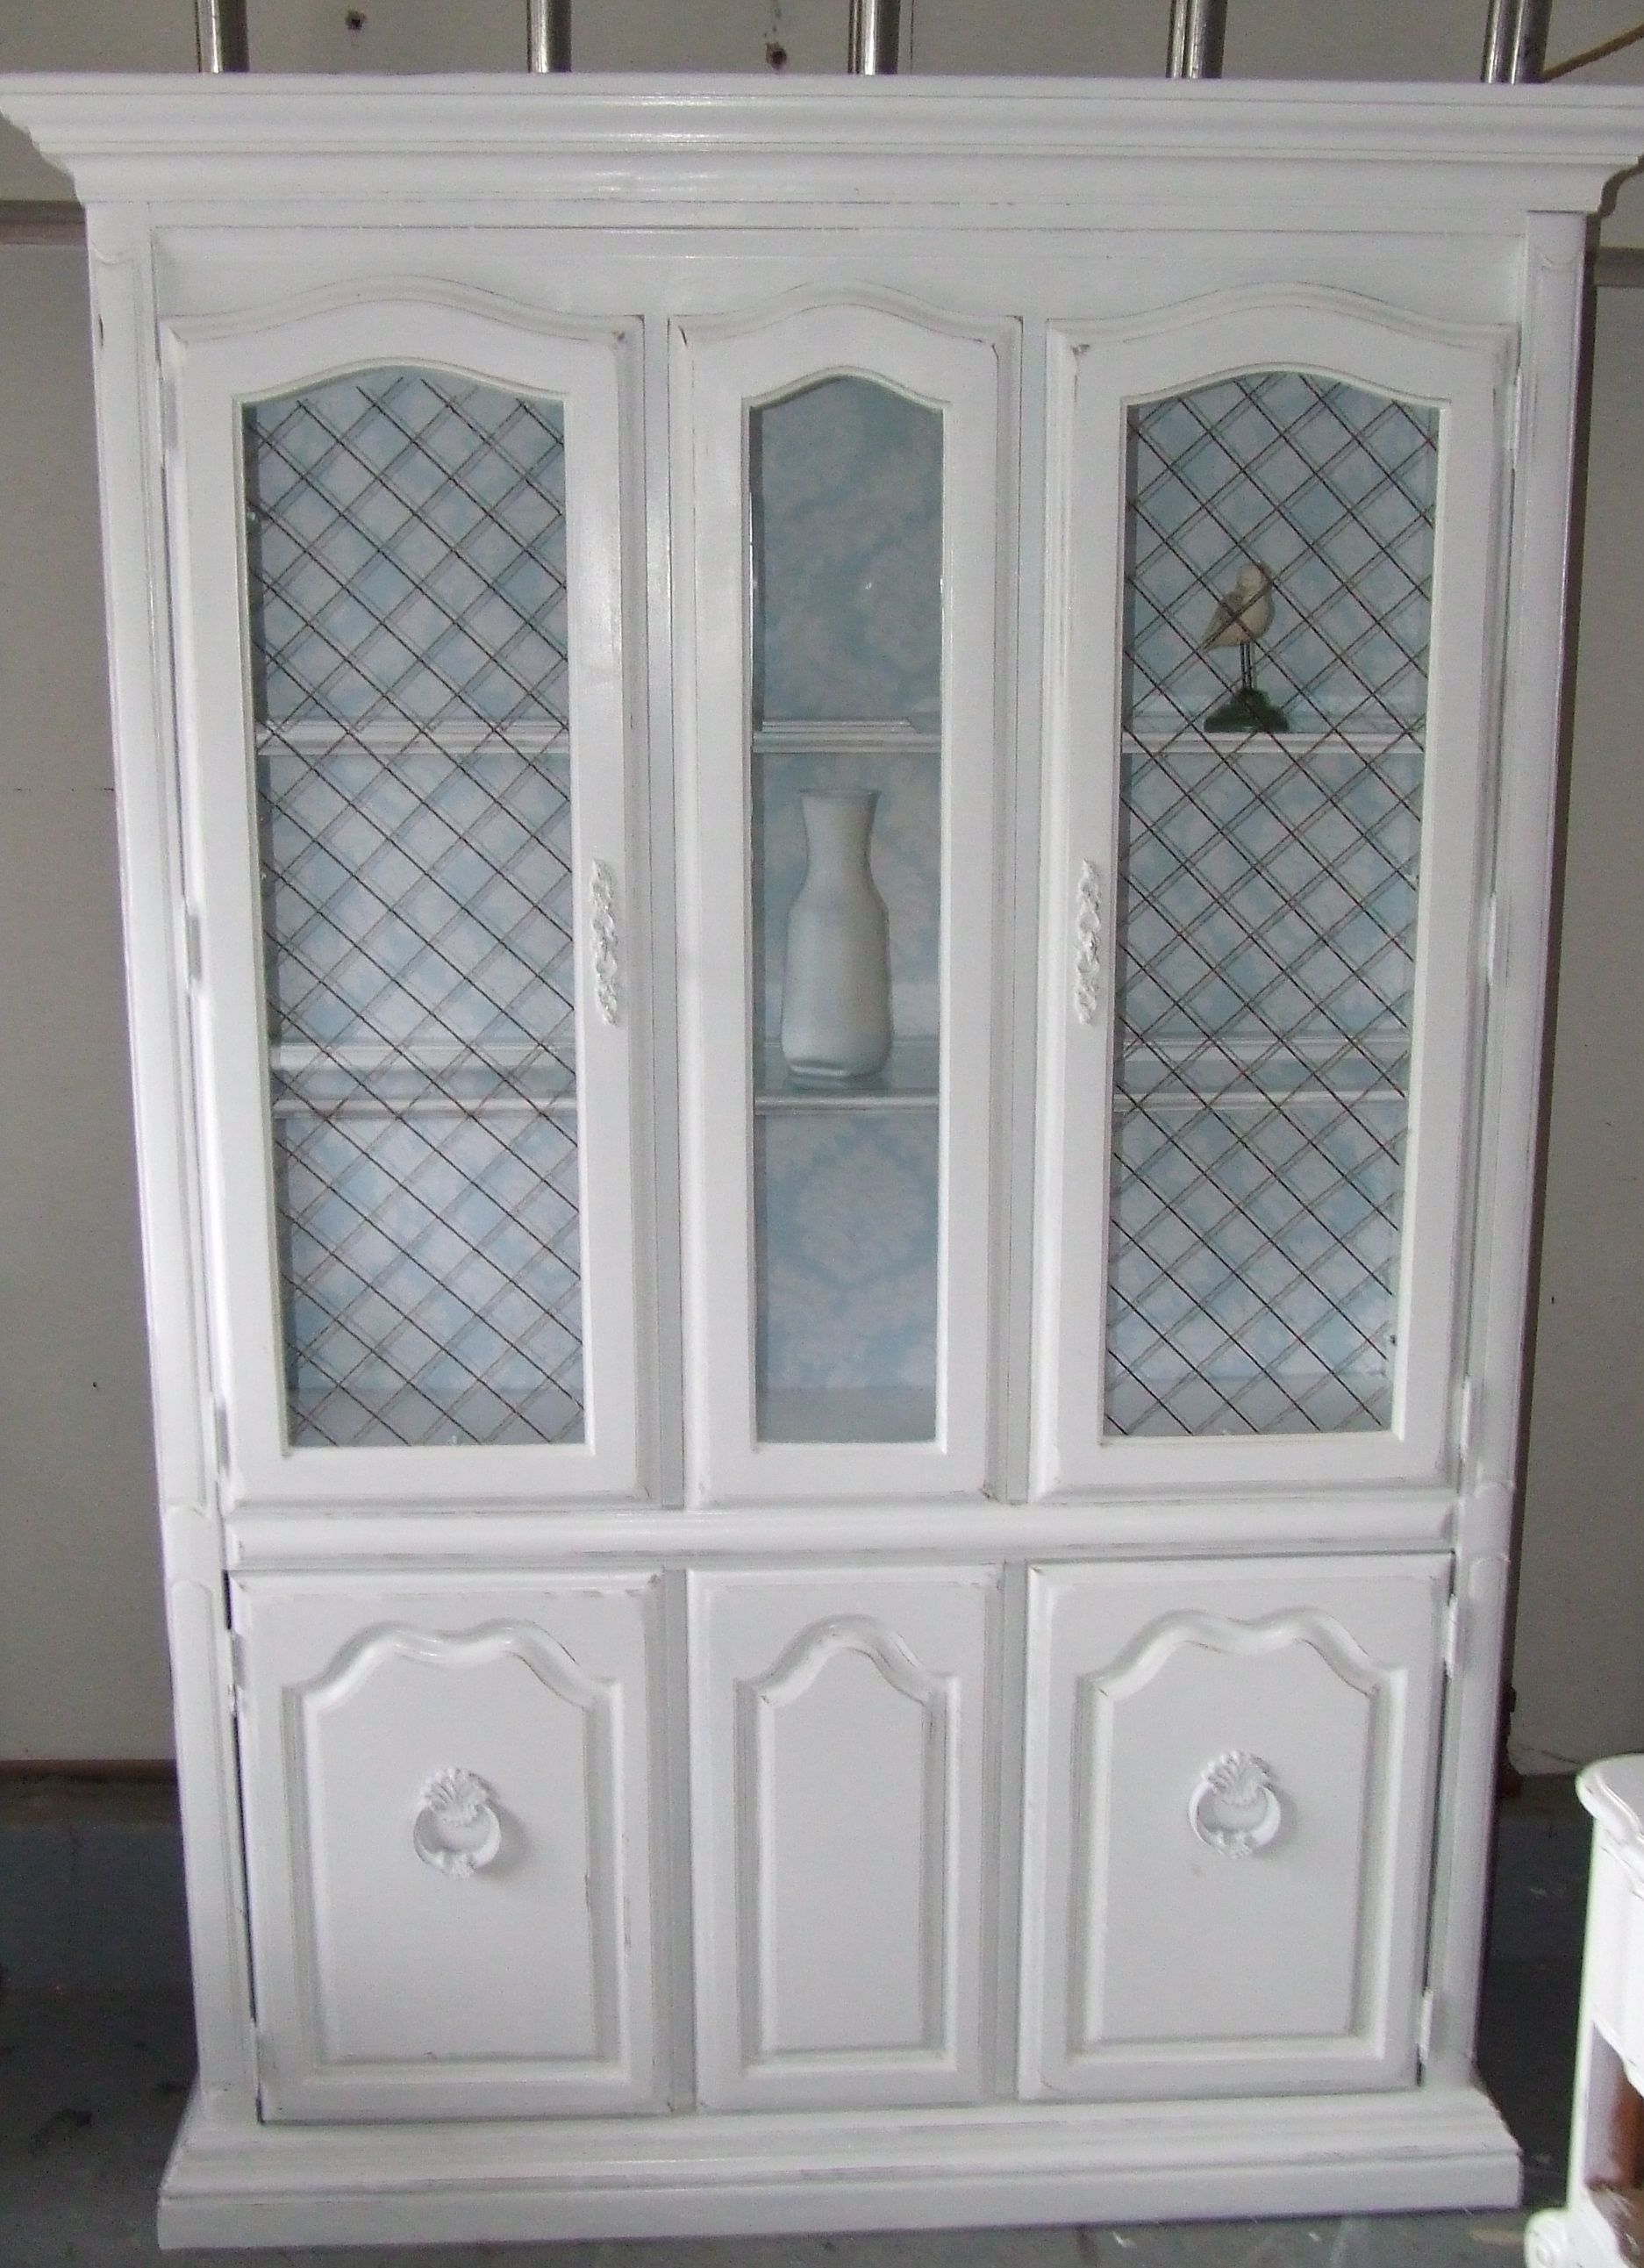 Antique white distressed vintage hutch with mesh door fronts...or without? Can & Antique white distressed vintage hutch with mesh door fronts...or ... Pezcame.Com